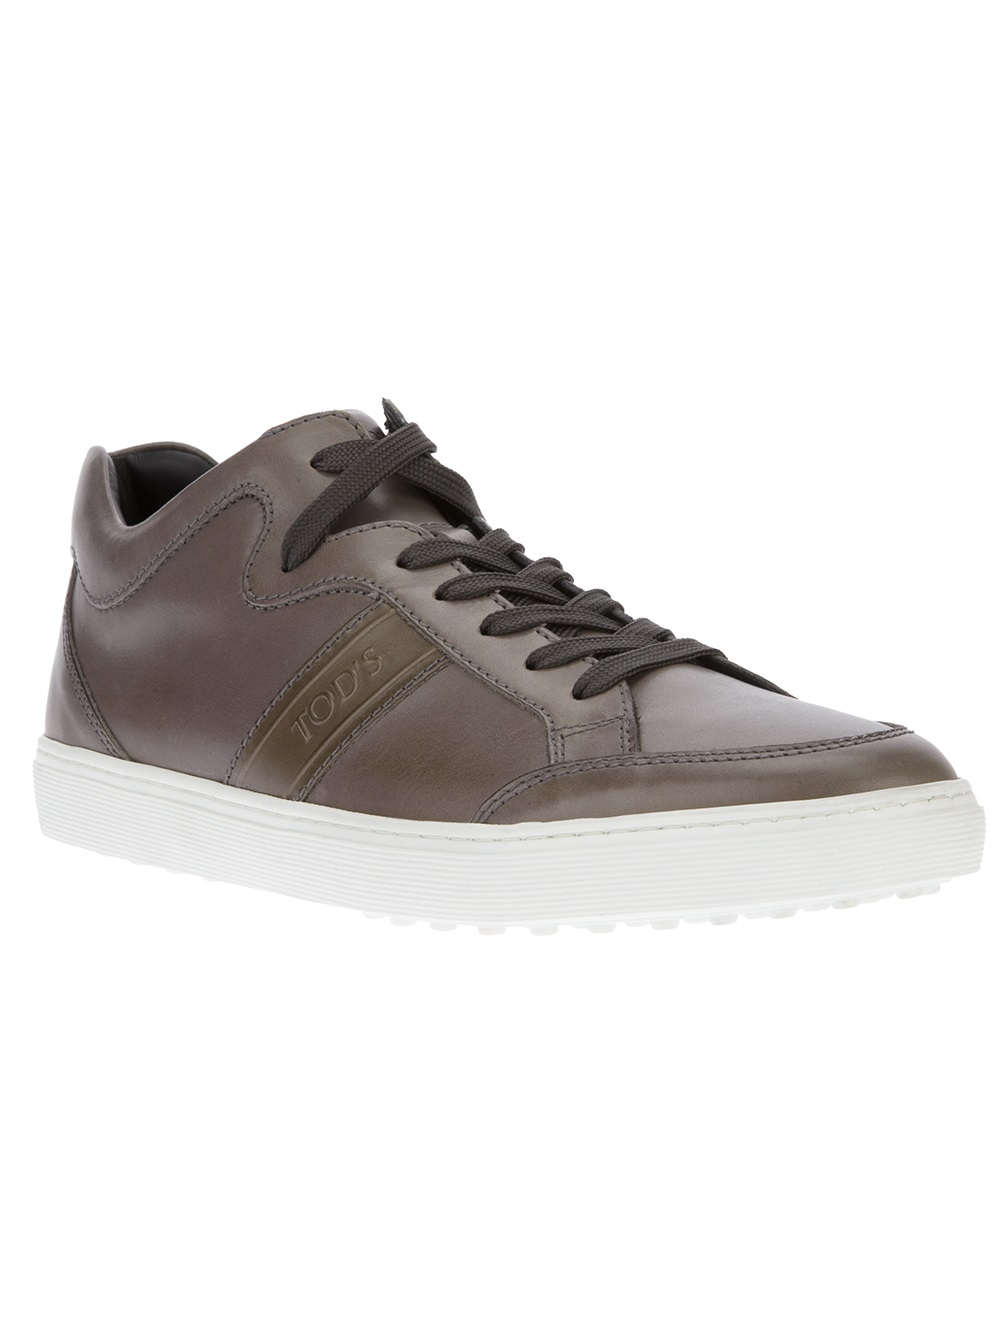 get cheap b940e 60728 tods-gray-polacco-sport-box-sneaker-product-1-12267053-0-437084817-normal.jpeg